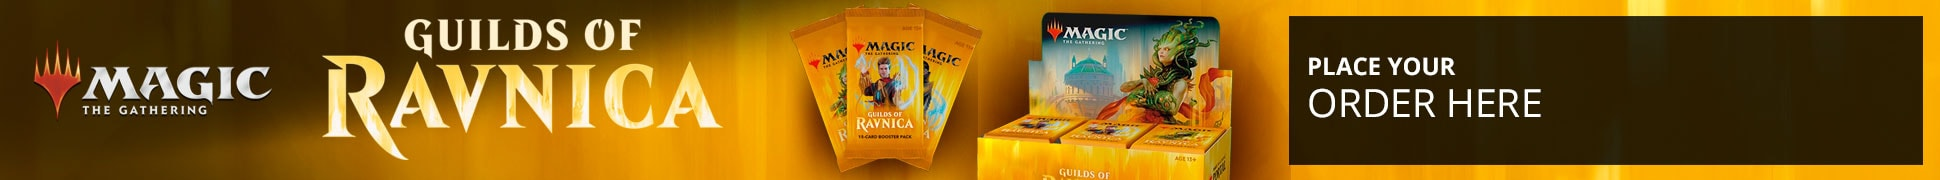 Order Guilds of Ravnica here